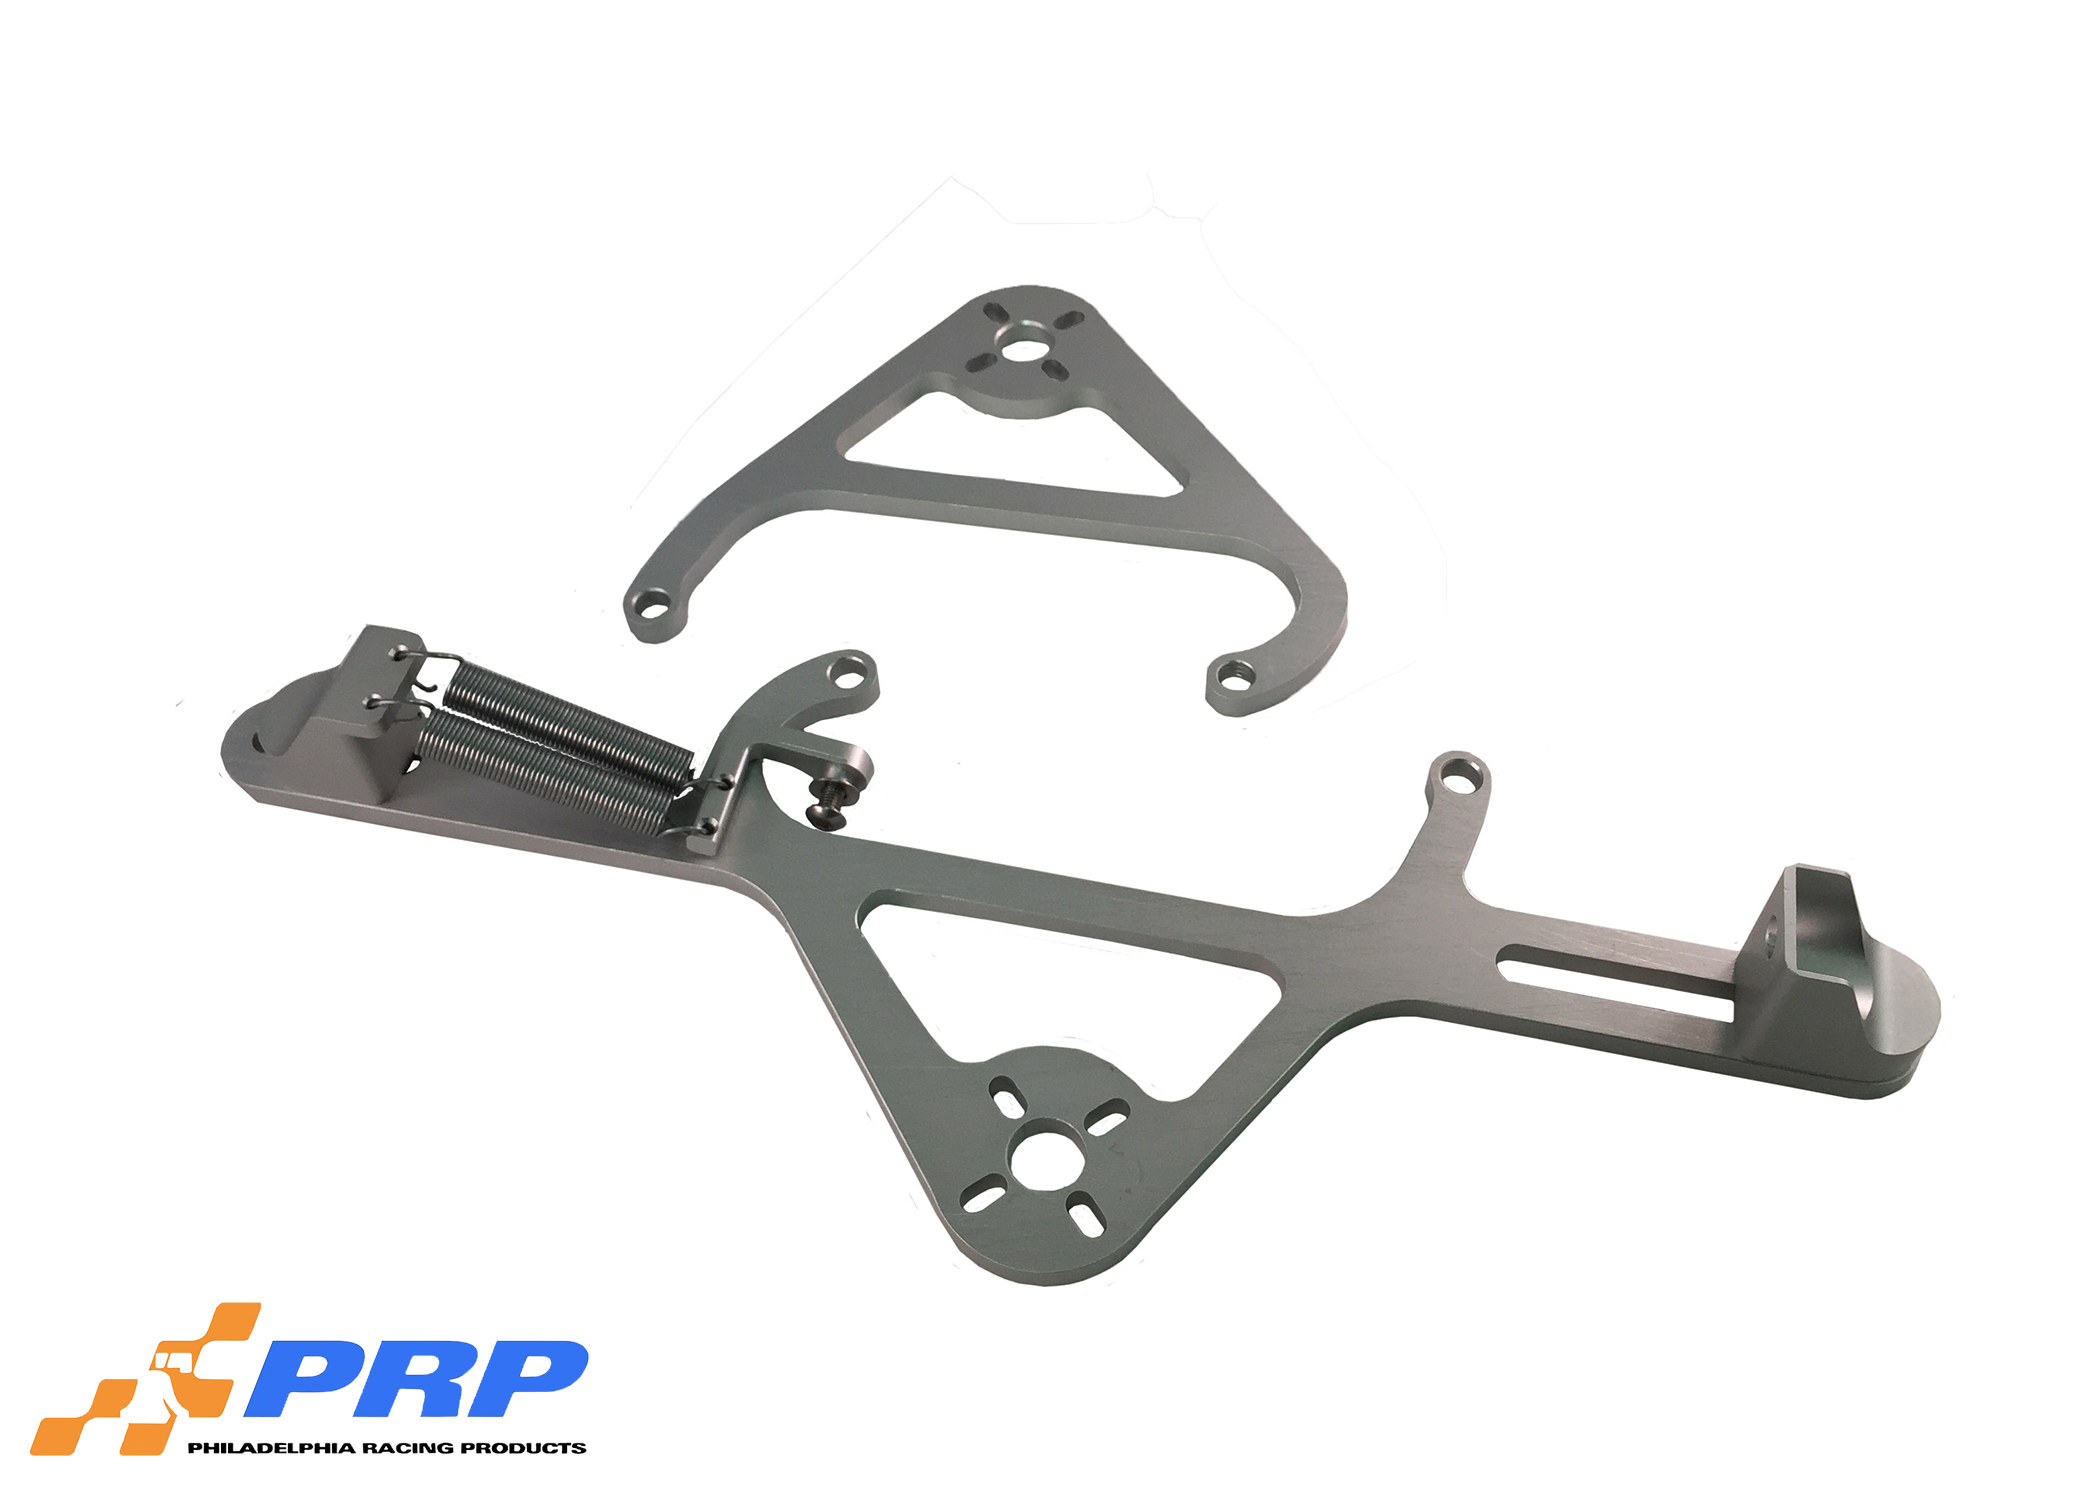 Clear 4500 Nitrous Valve Mounting Brackets with Throttle Bracket made by PRP Racing Products